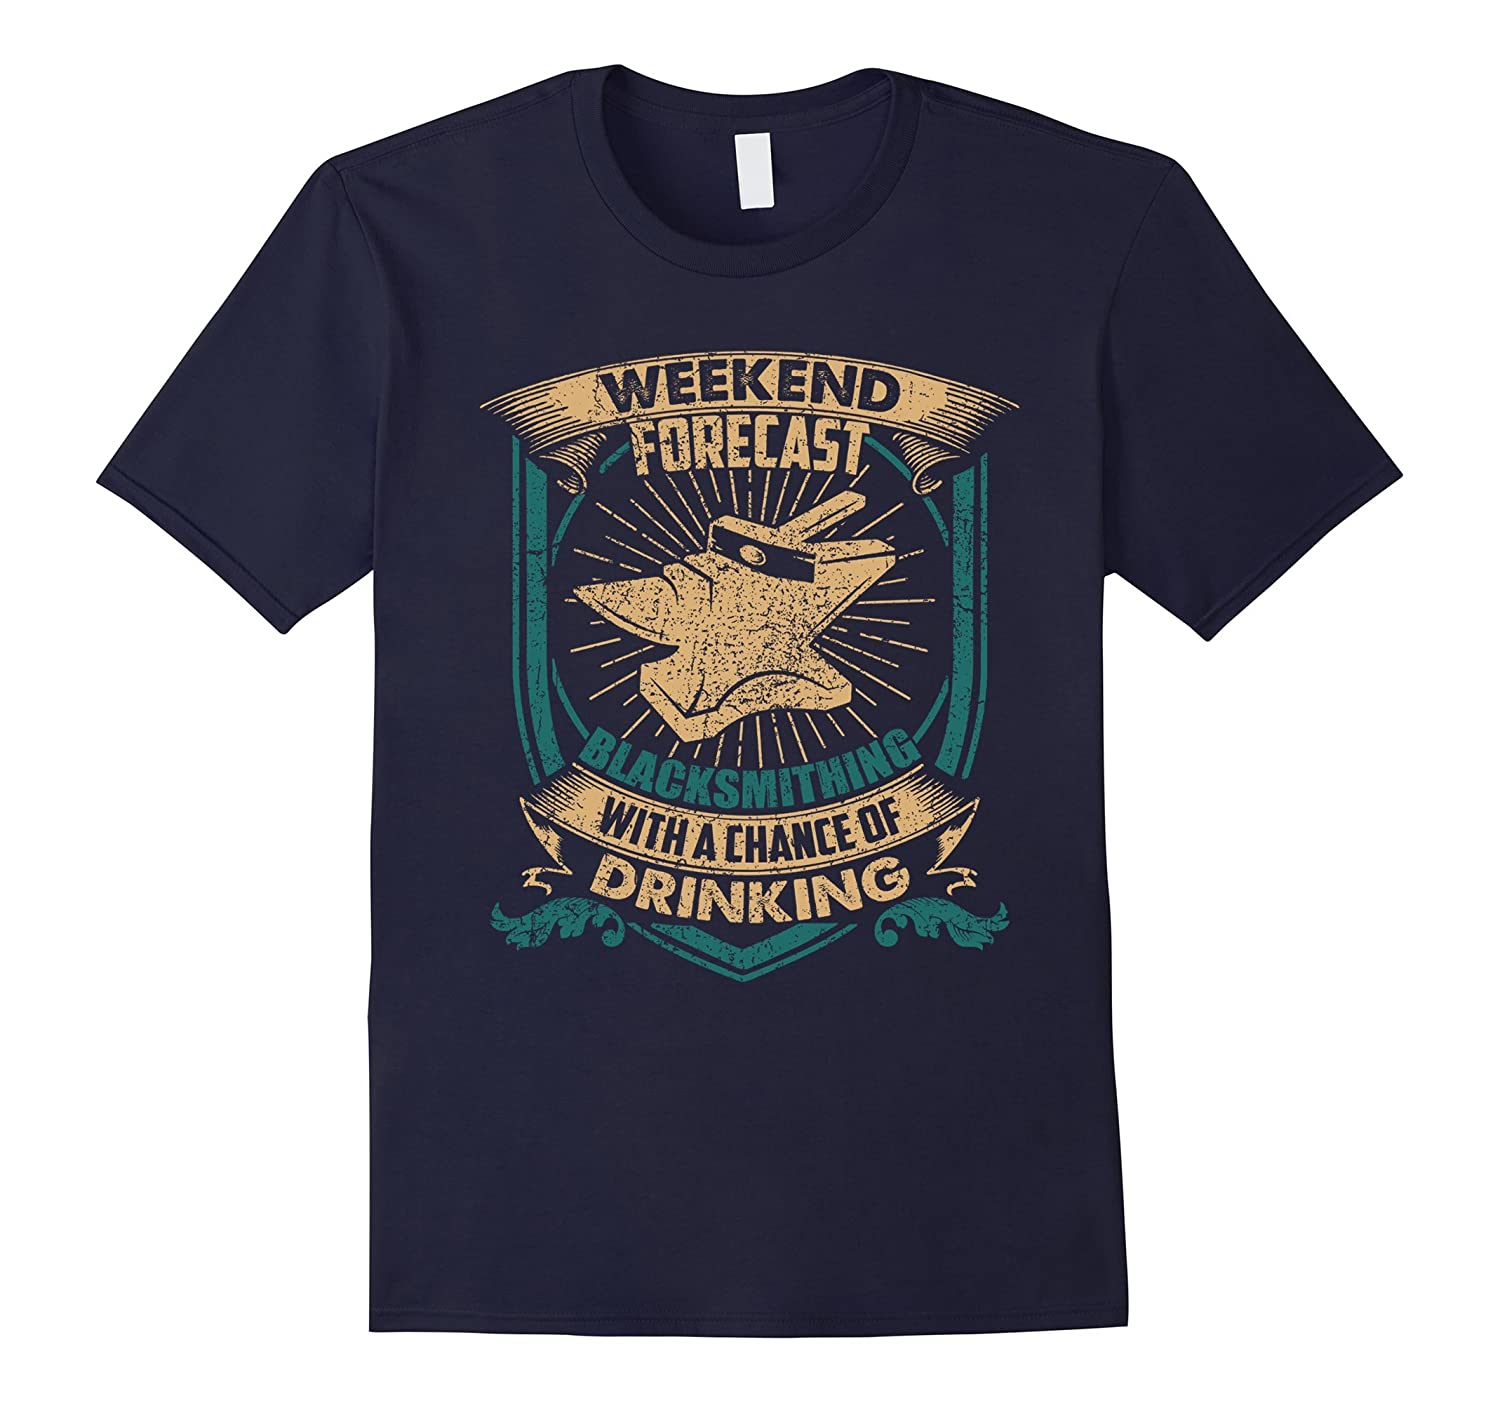 Blacksmith T shirt - Weekend Forecast Blacksmithing Shirts-TH